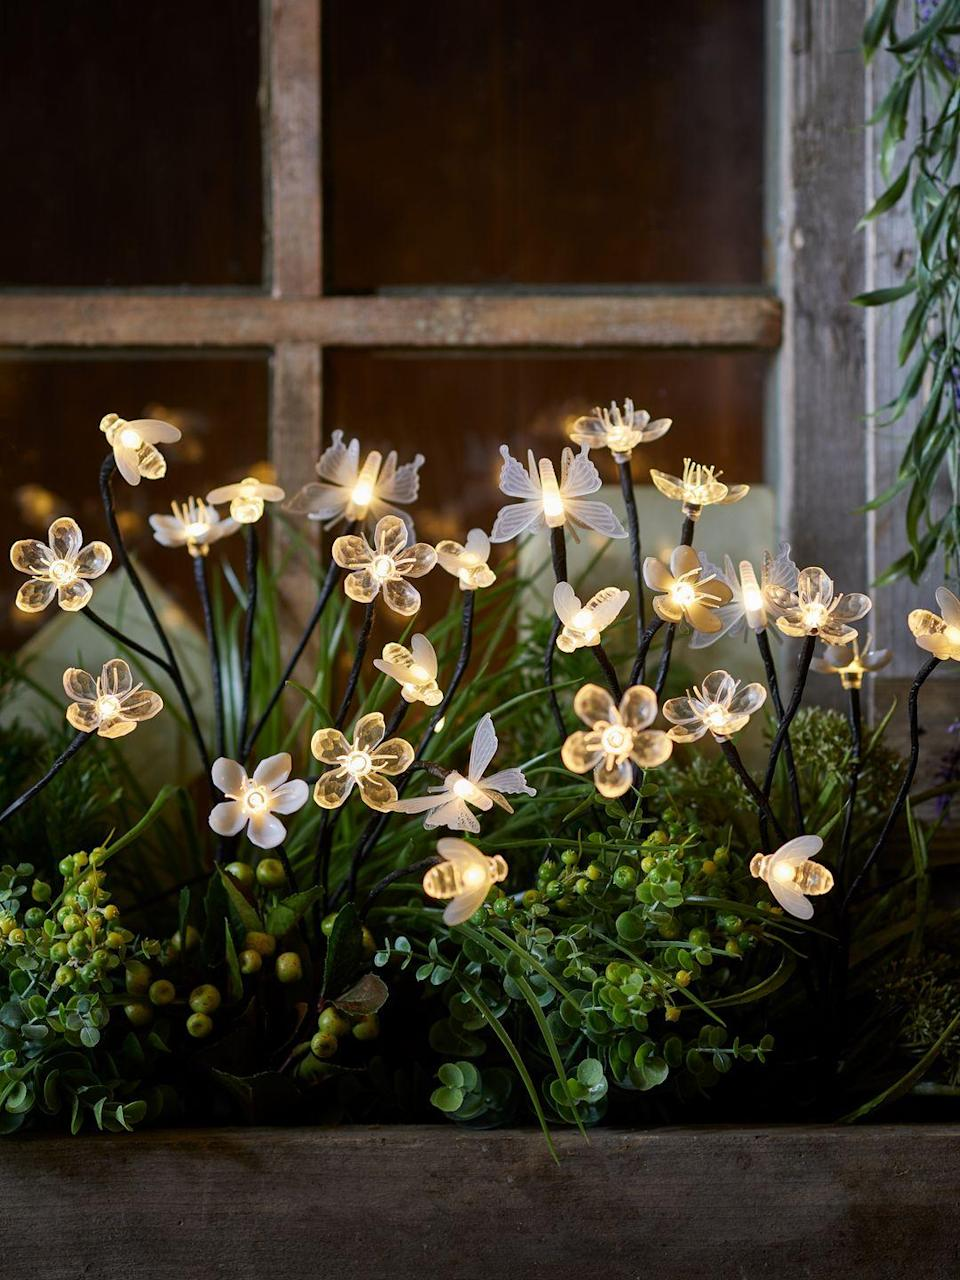 """<p>Buy stake lights to scatter amongst shrubs, place on your lawn, or stick into <a href=""""https://www.housebeautiful.com/uk/garden/a30878177/window-boxes/"""" rel=""""nofollow noopener"""" target=""""_blank"""" data-ylk=""""slk:window boxes"""" class=""""link rapid-noclick-resp"""">window boxes</a> for instant wow factor. These are pretty inexpensive and they add a wonderful decorative touch to your garden, however small it is. </p><p>With solar lights, just place it within a sunny spot in your garden to enable a full day's charge. As evening falls, the lights will automatically shine bright.</p><p><strong>Pictured: </strong>Flower, Bee & Butterfly Solar Stake Lights, <a href=""""https://go.redirectingat.com?id=127X1599956&url=https%3A%2F%2Fwww.lights4fun.co.uk%2Fproducts%2Fflower-bee-butterfly-solar-stake-lights&sref=https%3A%2F%2Fwww.housebeautiful.com%2Fuk%2Fgarden%2Fdesigns%2Fg28%2Fgarden-ideas-on-a-budget%2F"""" rel=""""nofollow noopener"""" target=""""_blank"""" data-ylk=""""slk:Lights4Fun"""" class=""""link rapid-noclick-resp"""">Lights4Fun</a> </p>"""